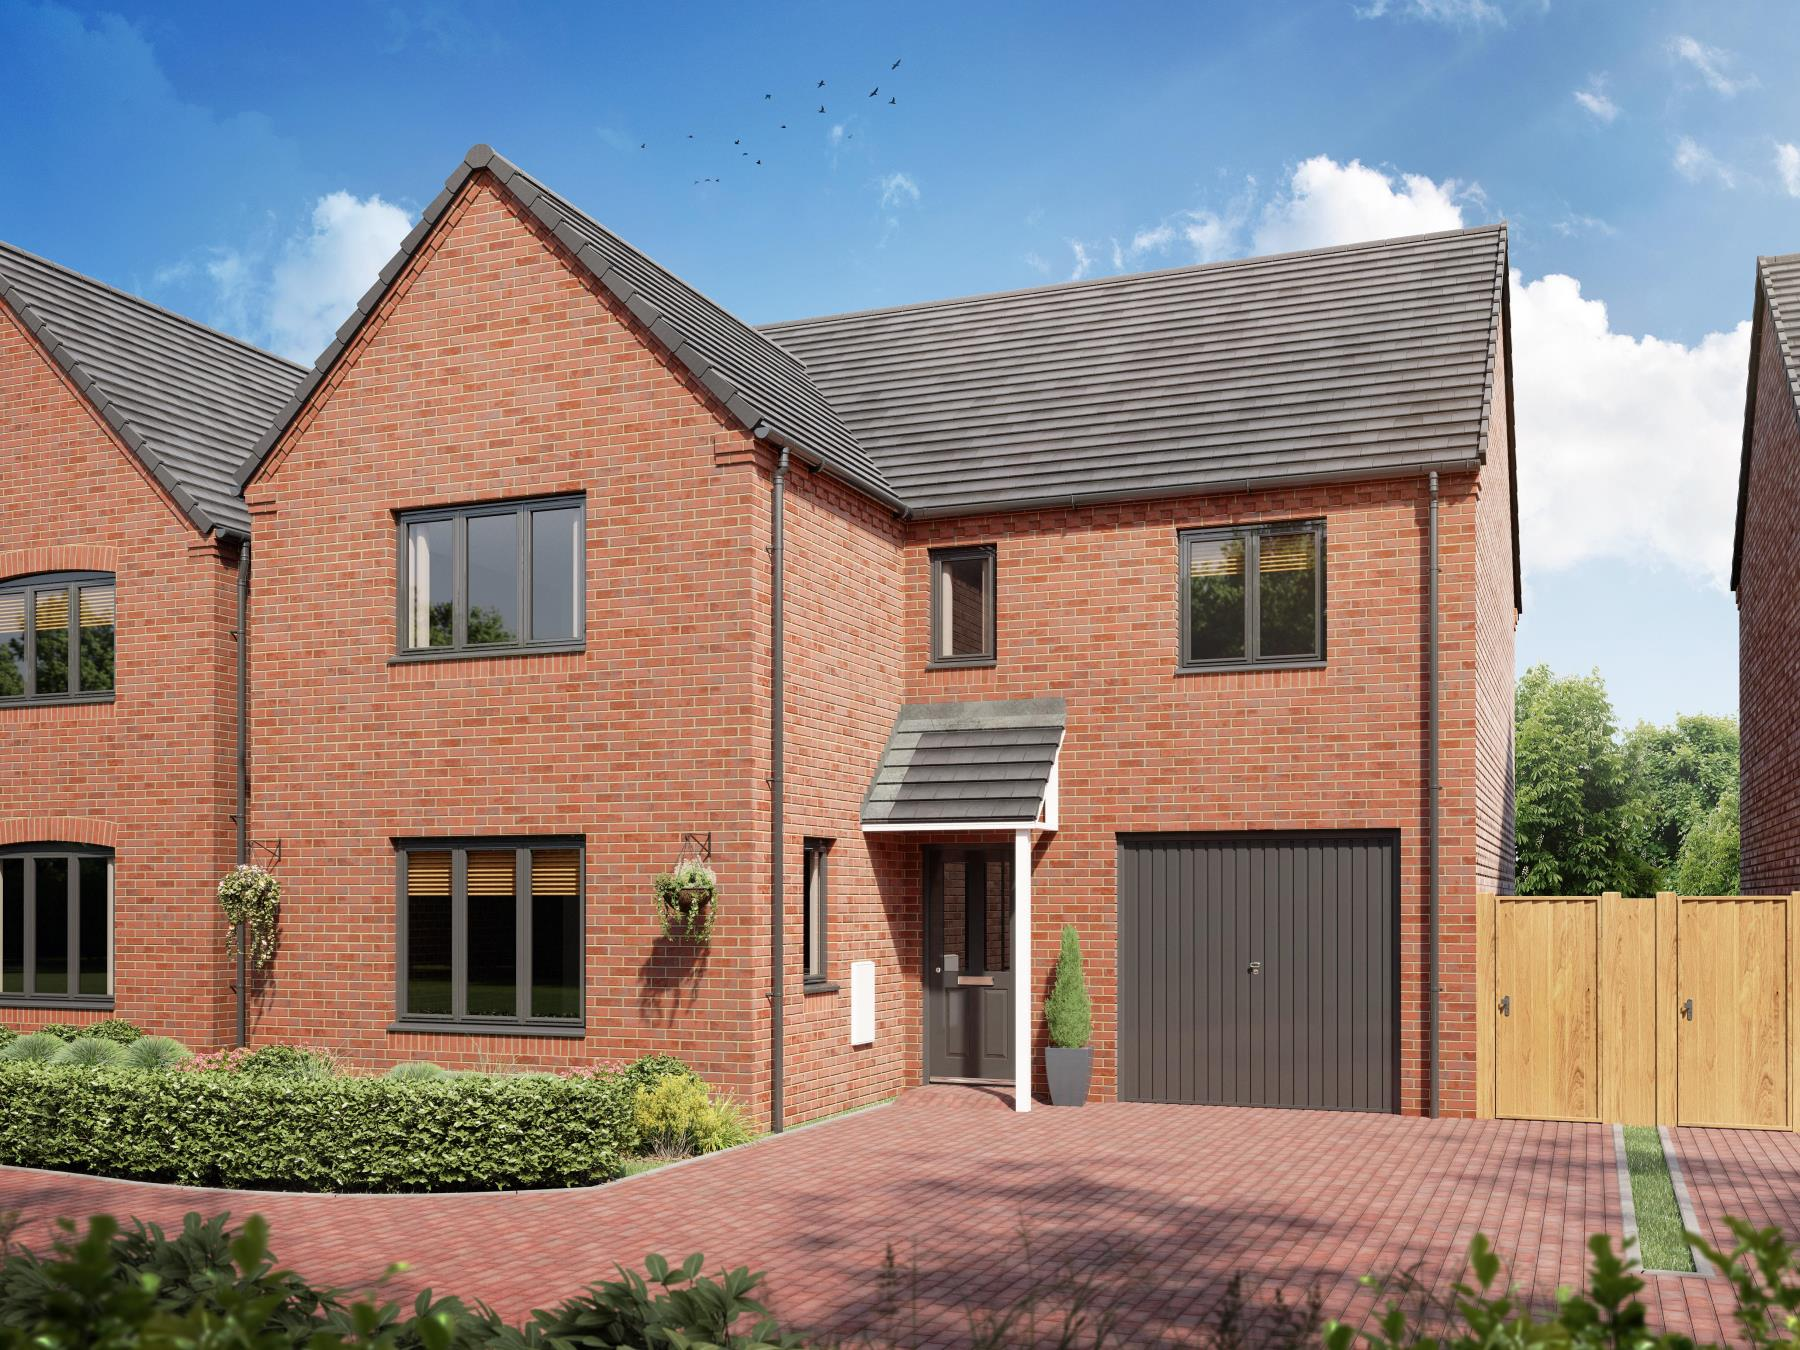 TND40 - Plot 123 Coltham